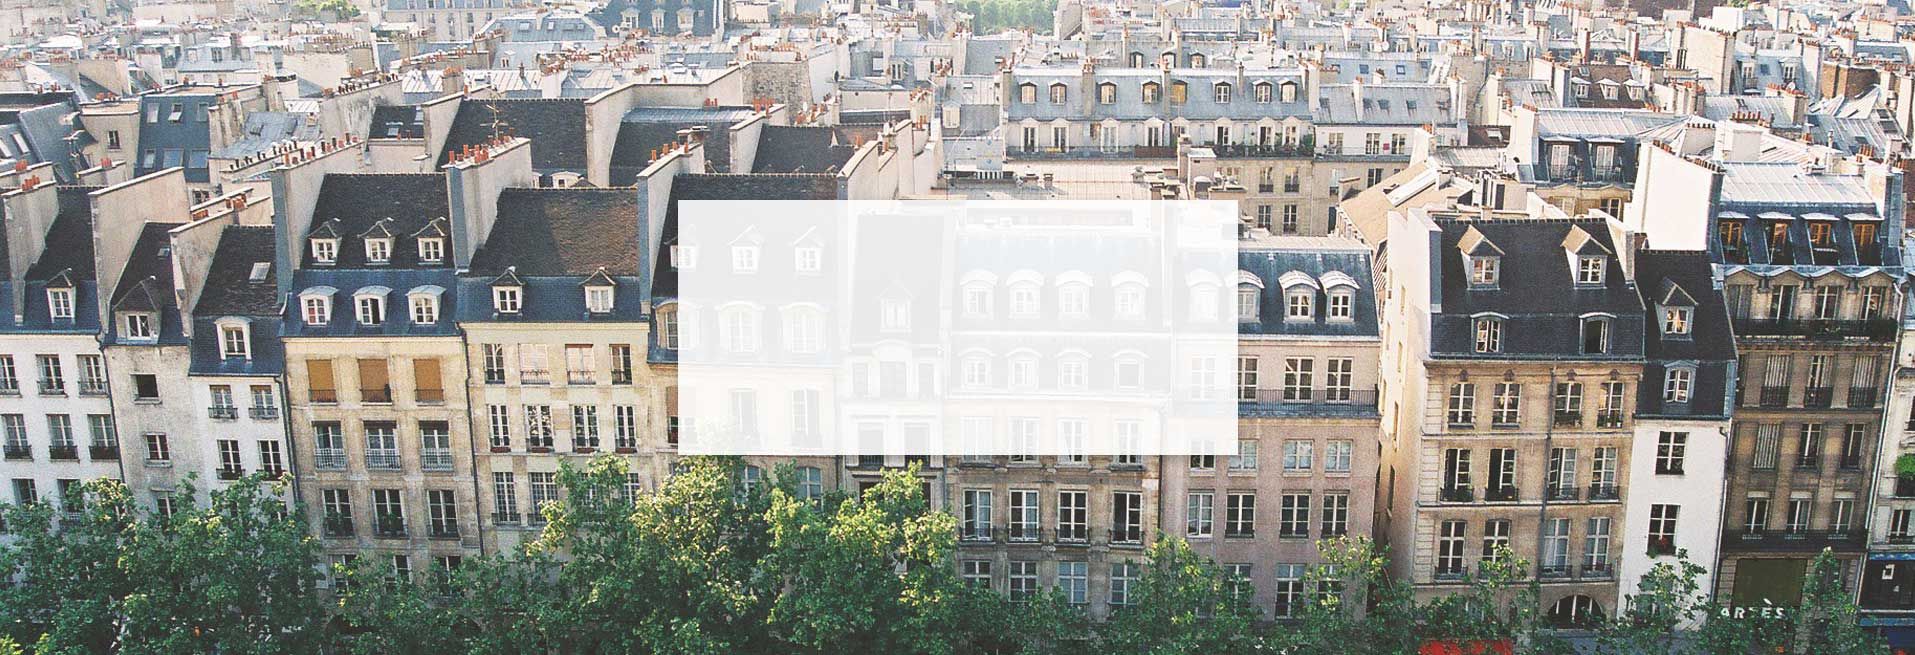 ohrcoinvest-homepage-slider-immobilier